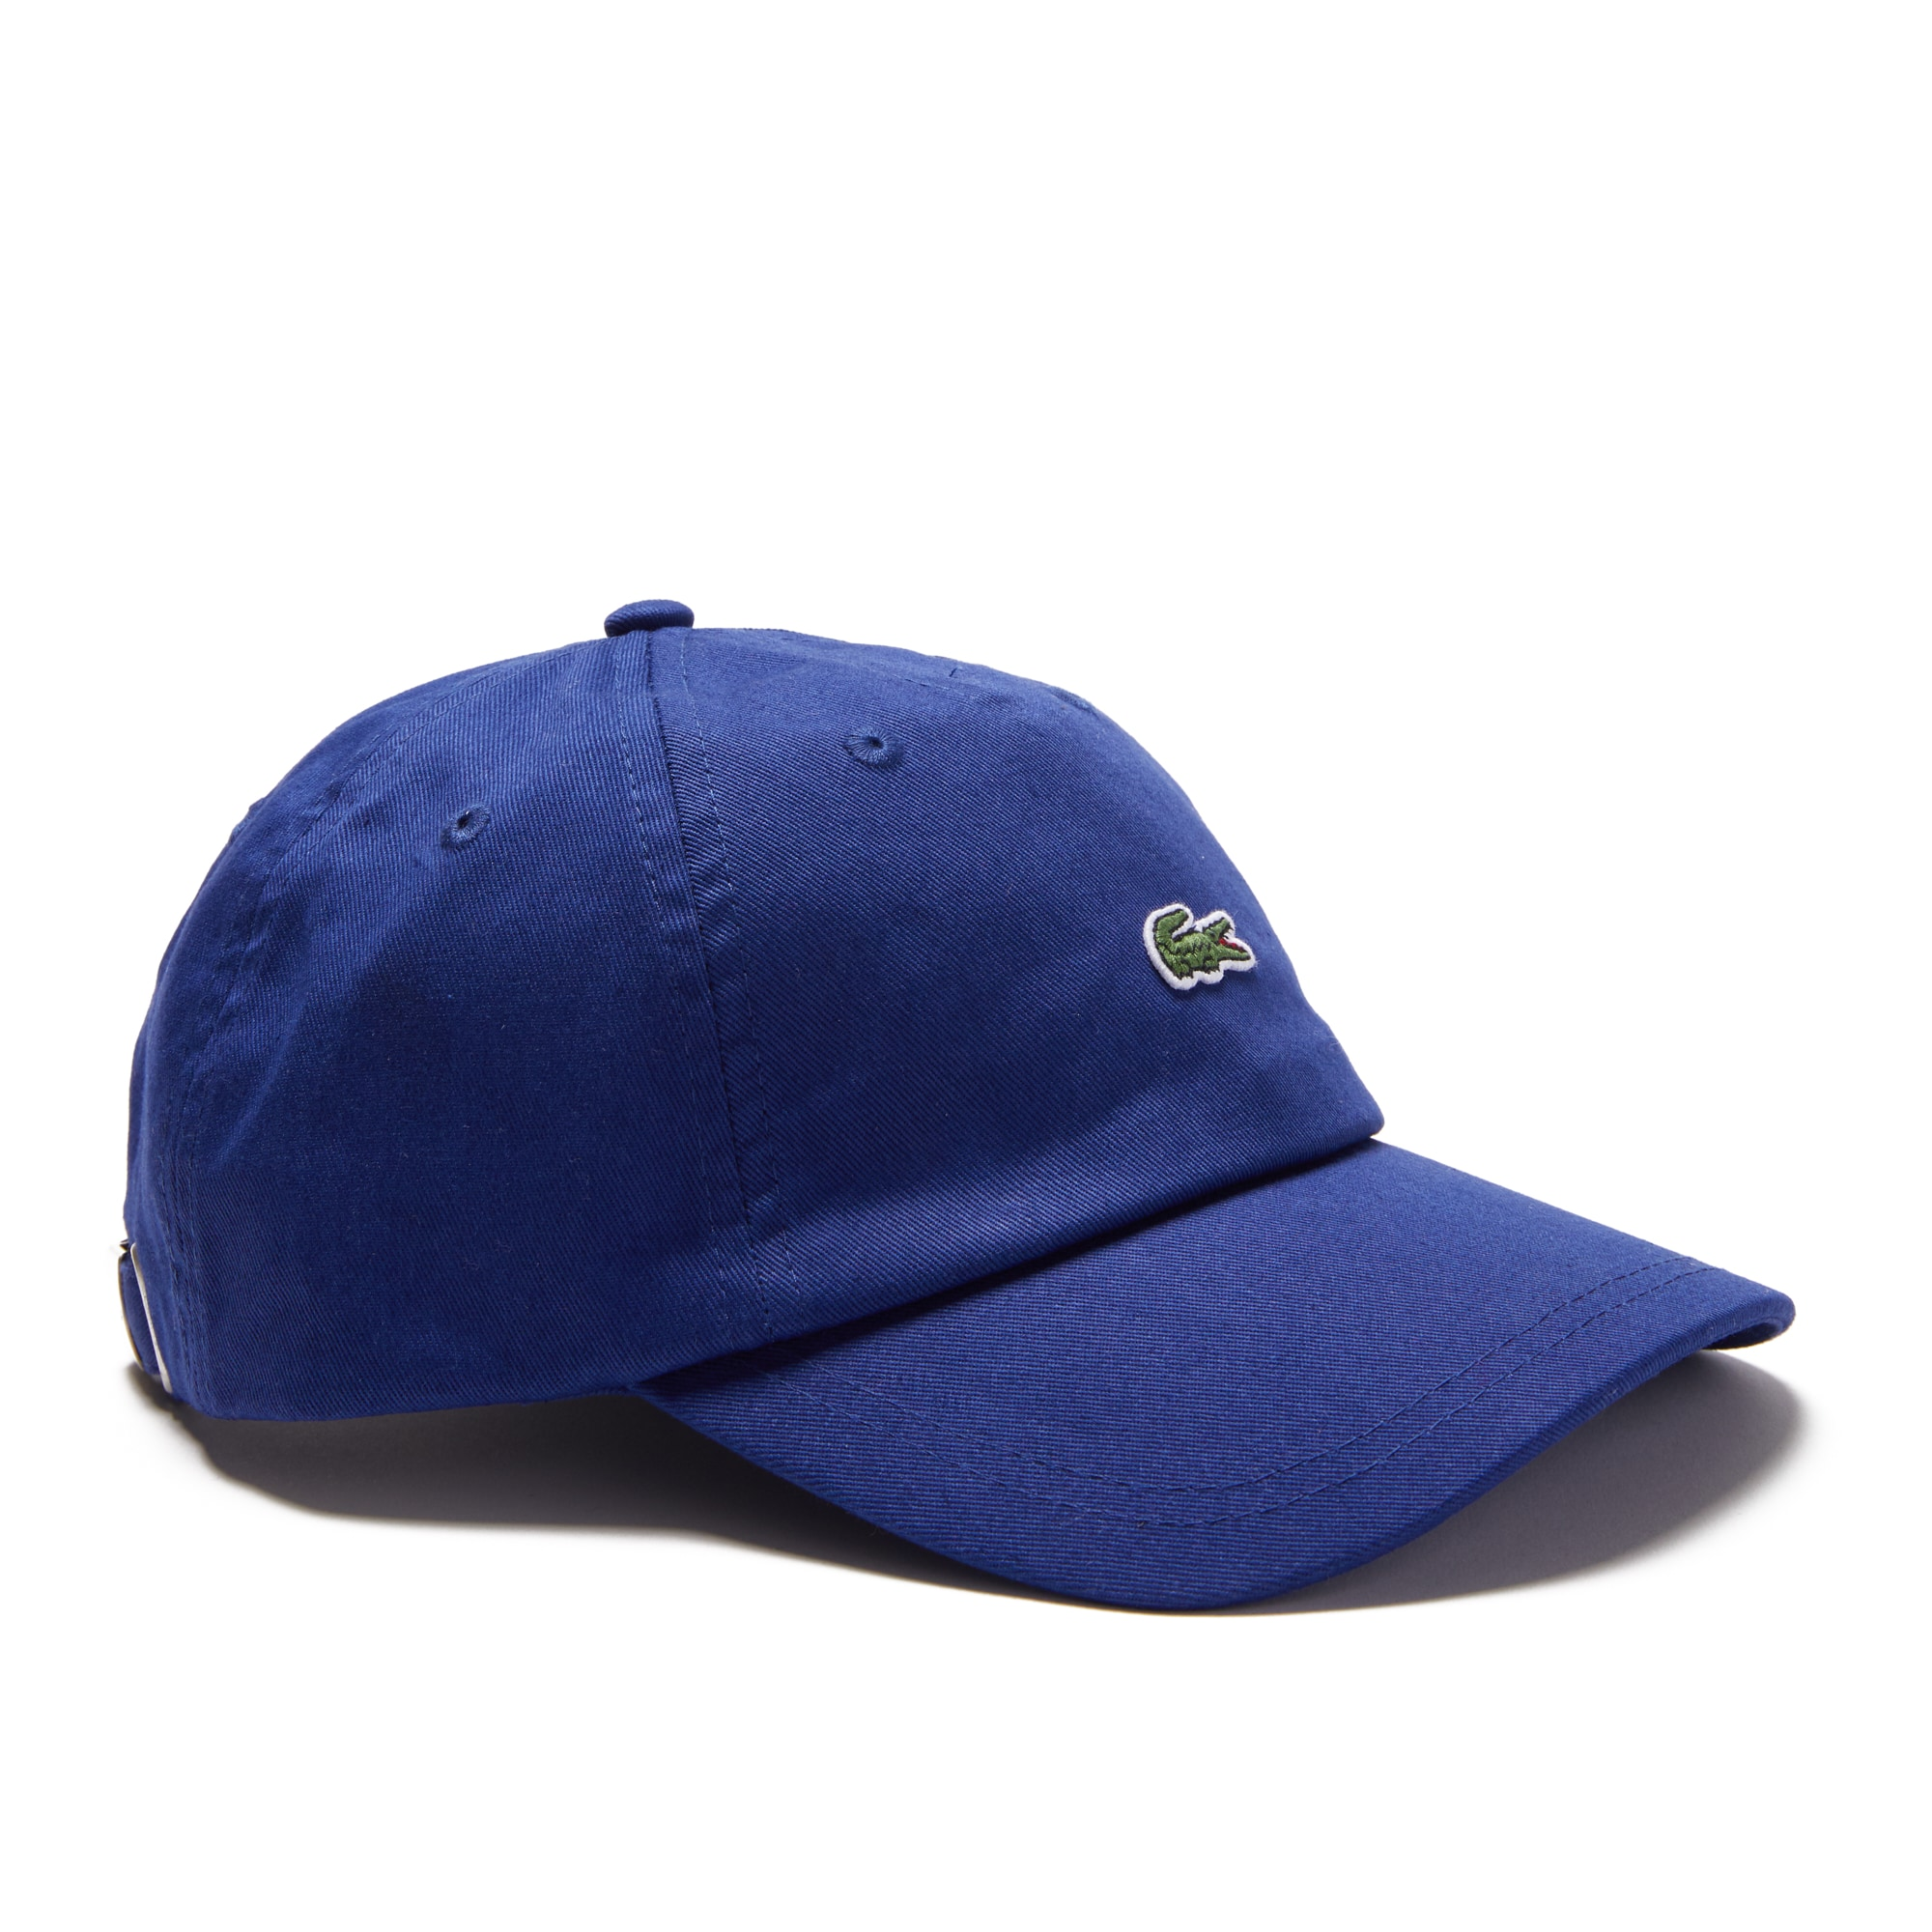 Men's Small Croc Gabardine Cap